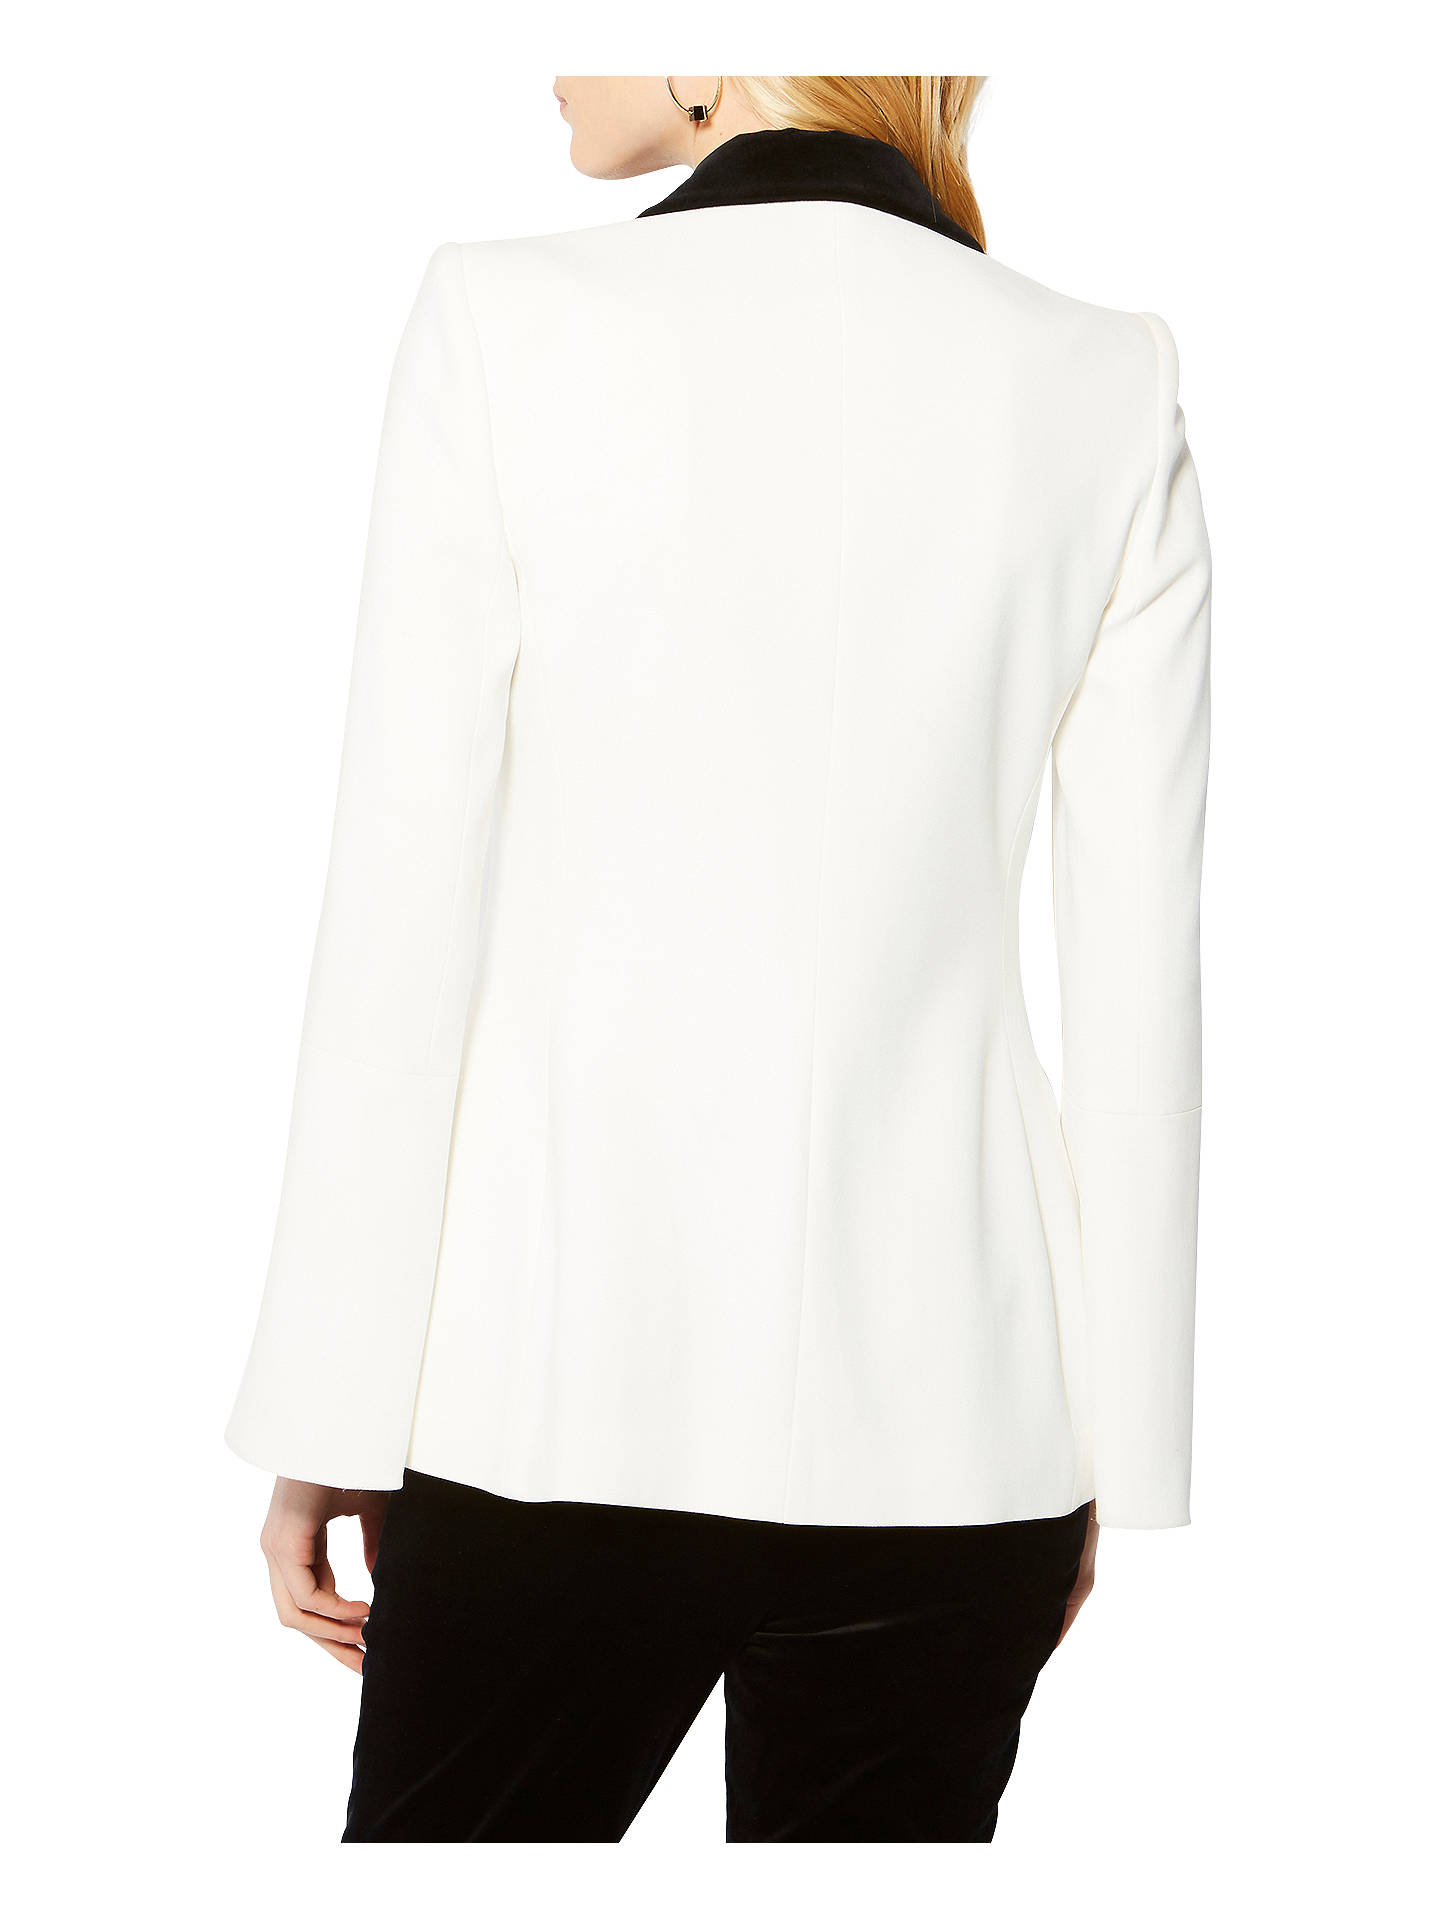 Buy Karen Millen Tuxedo Collection Tailored Blazer, Ivory, 6 Online at johnlewis.com